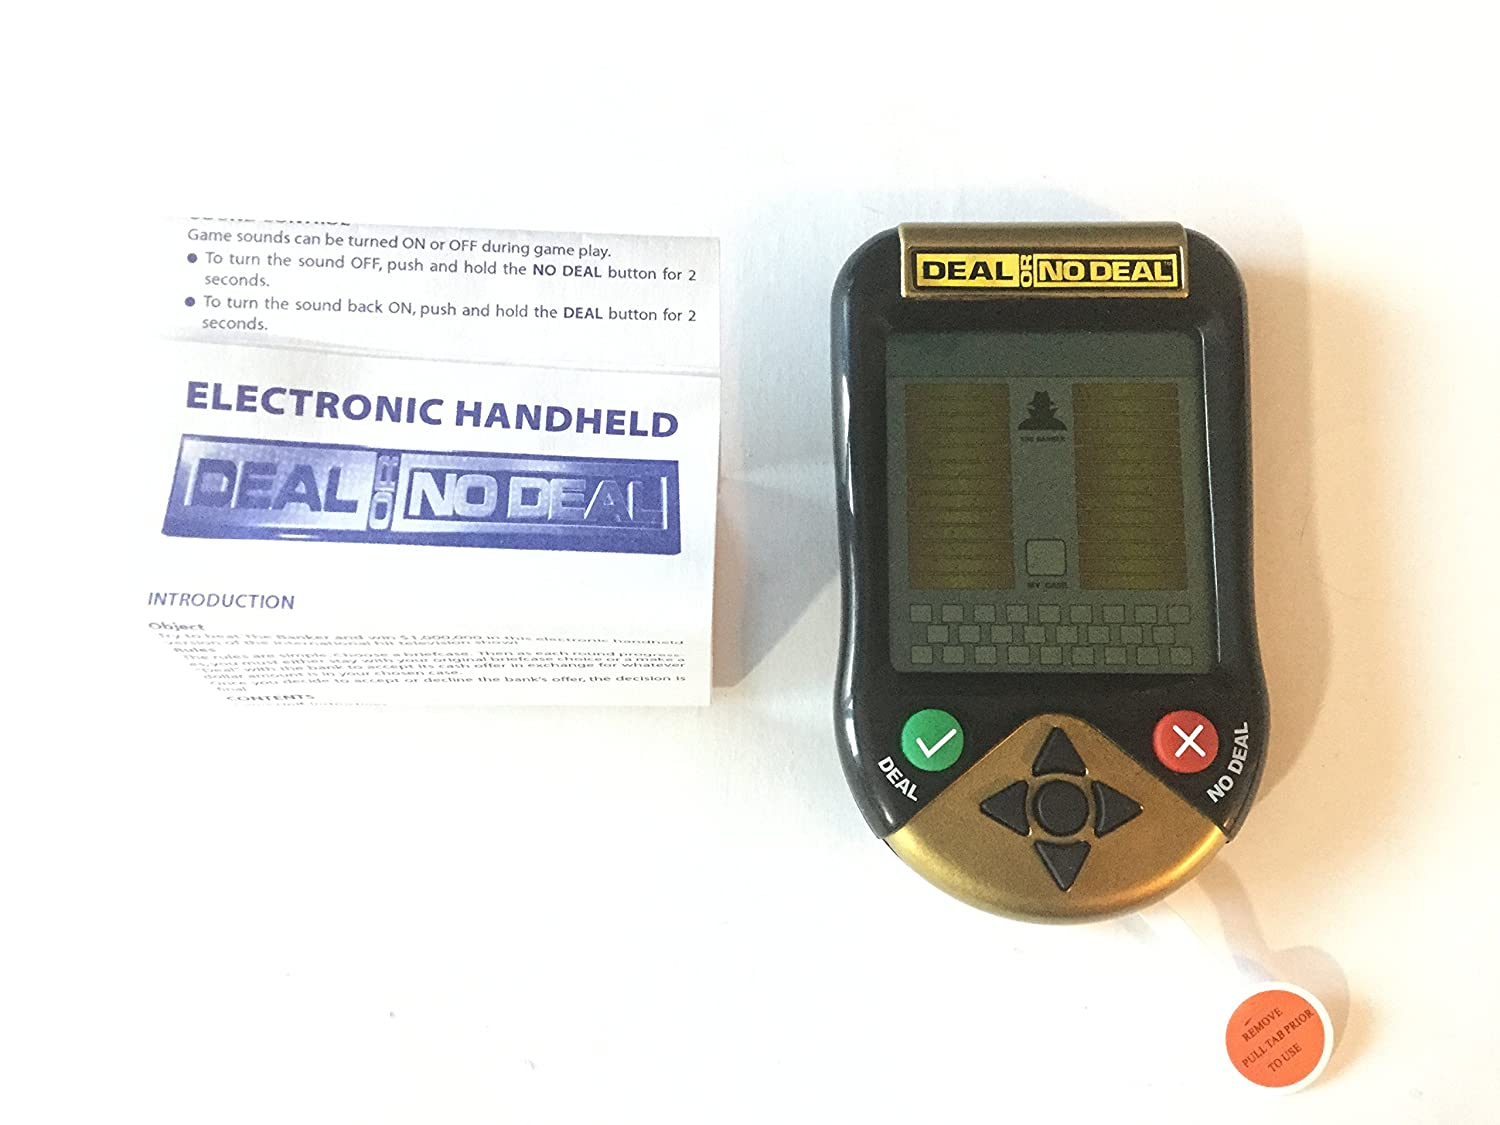 Deal Or No Deal Electronic Handheld Game B000EYF818